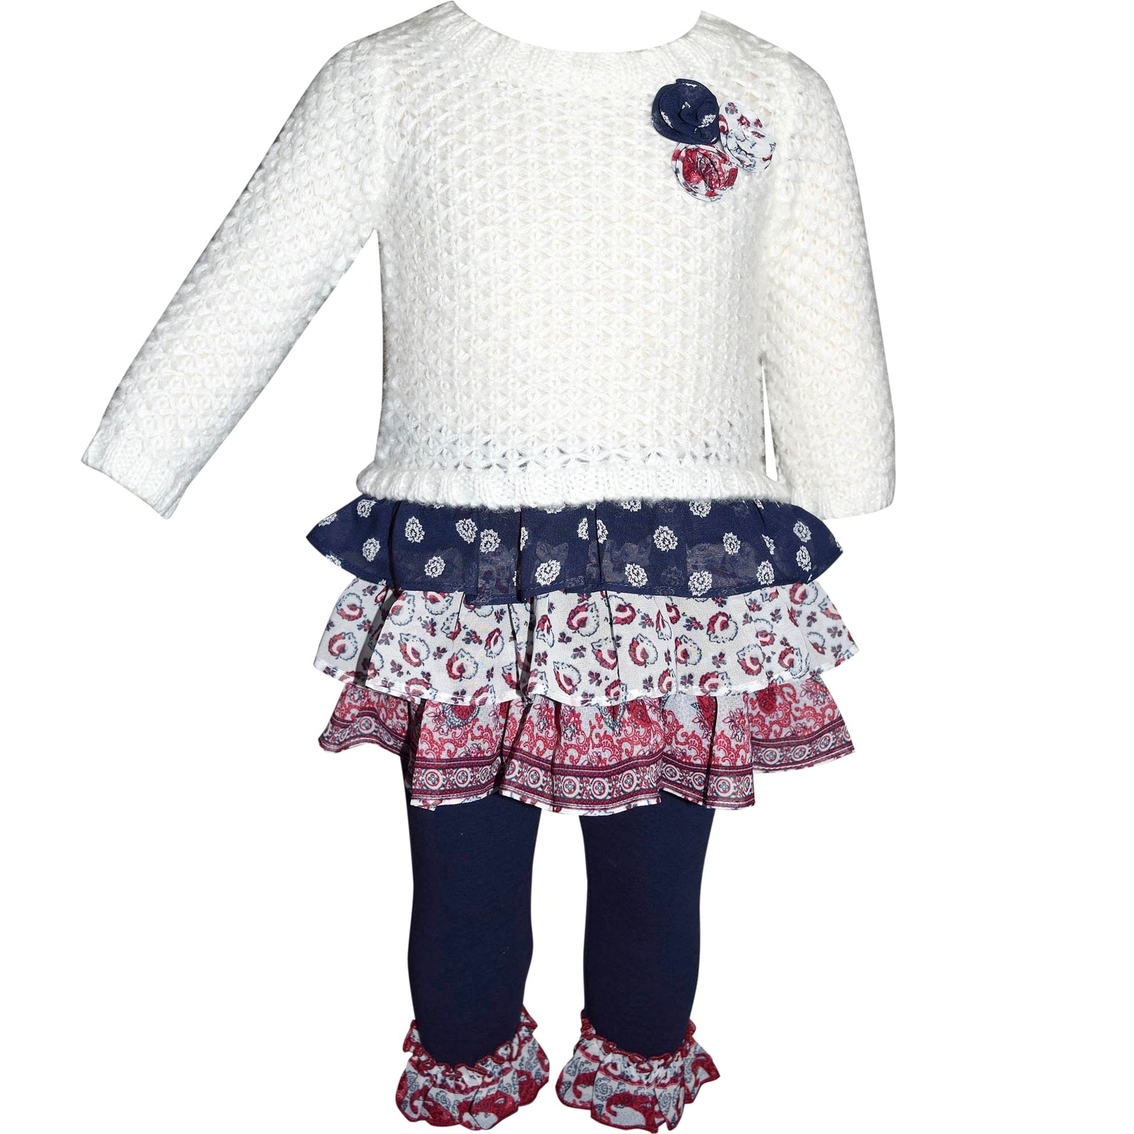 e537ffcc7a0b Blueberi Boulevard Infant Girls 2 Pc. Tiered Sweater Dress And ...